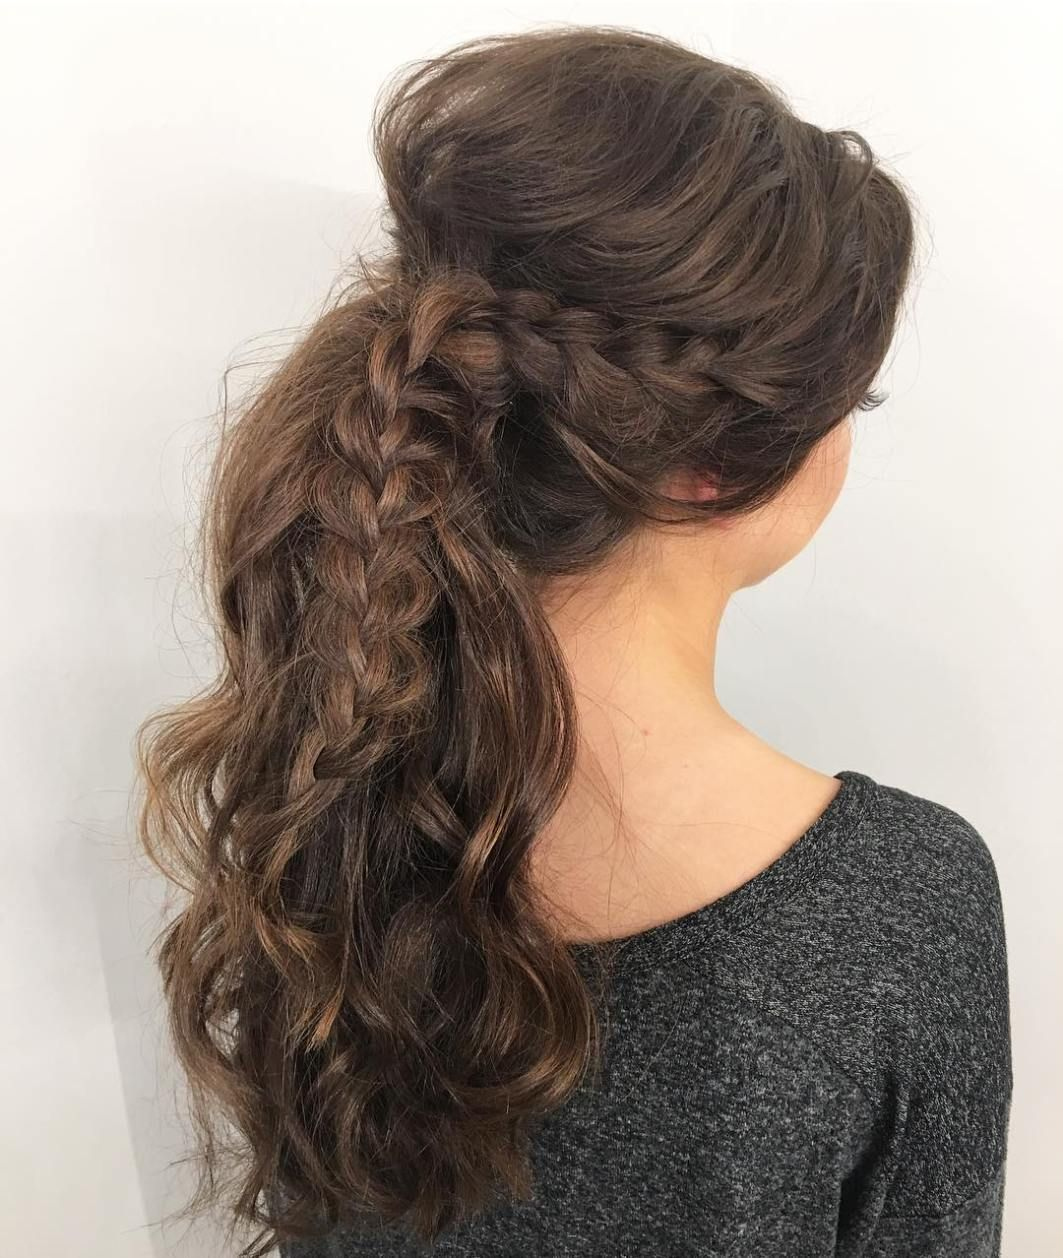 30 Eye-Catching Ways to Style Curly and Wavy Ponytails | Wavy ponytail, Messy ponytail, Long ...